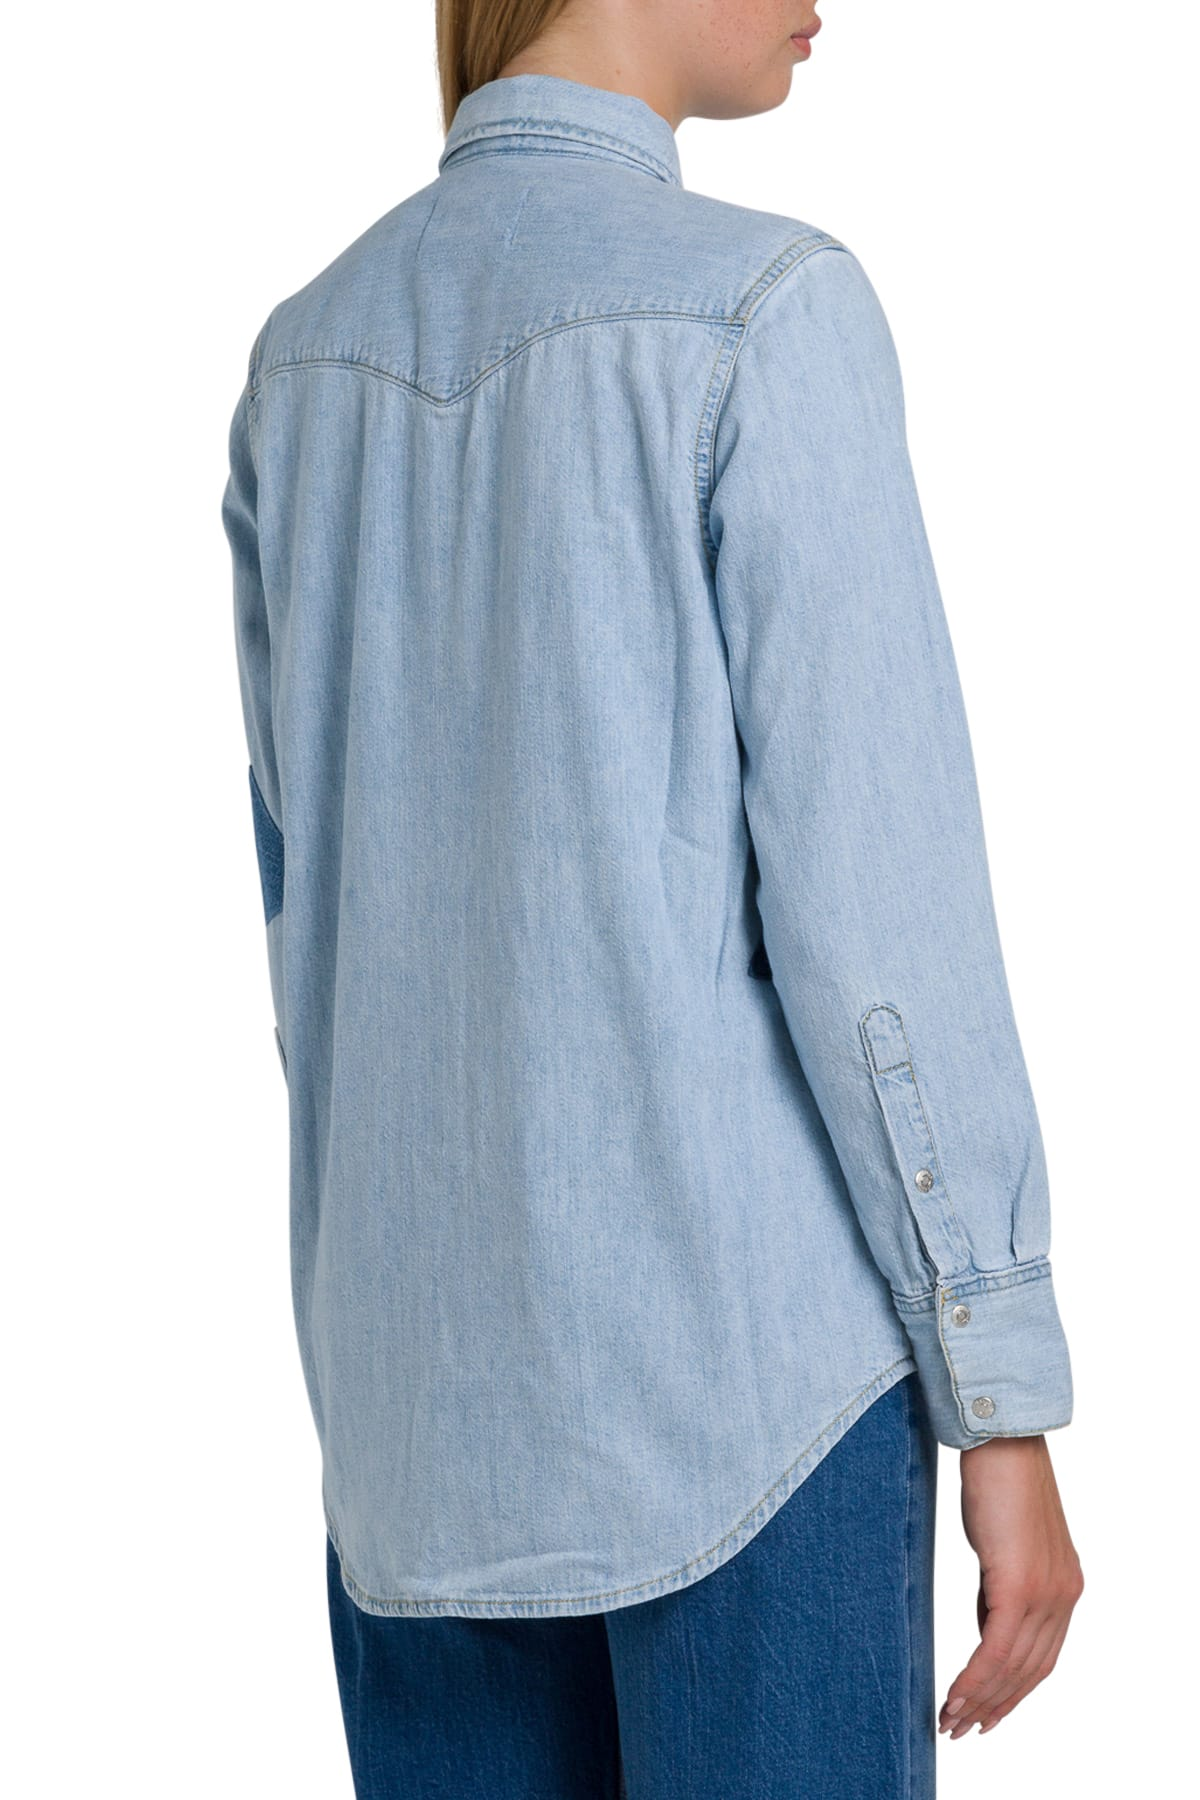 Jeans Foundation Calvin Western Shirt With Klein Denim Contrasting Patches UzMVqSp